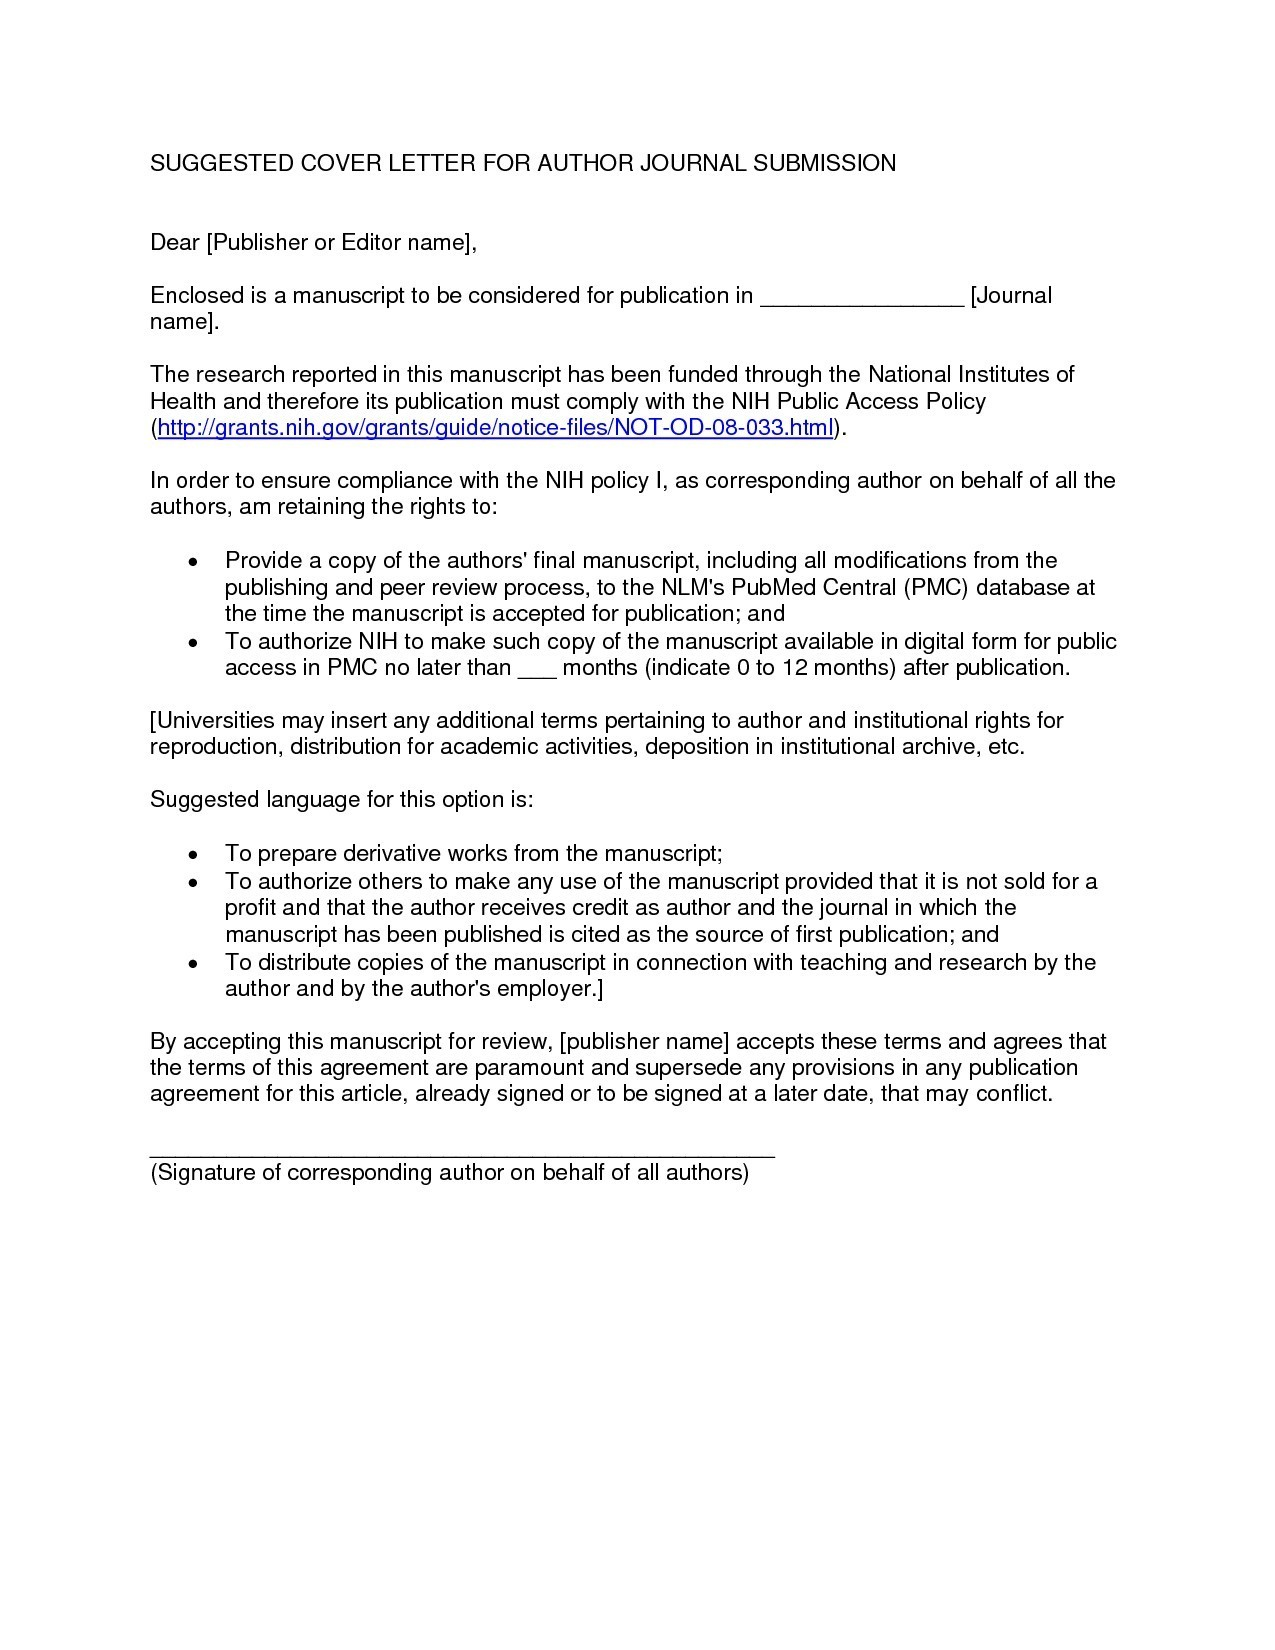 013 Cover Letter Template Manuscript Submission New Example To Journal Valid Sample Of For Article Singular Publication Model Full